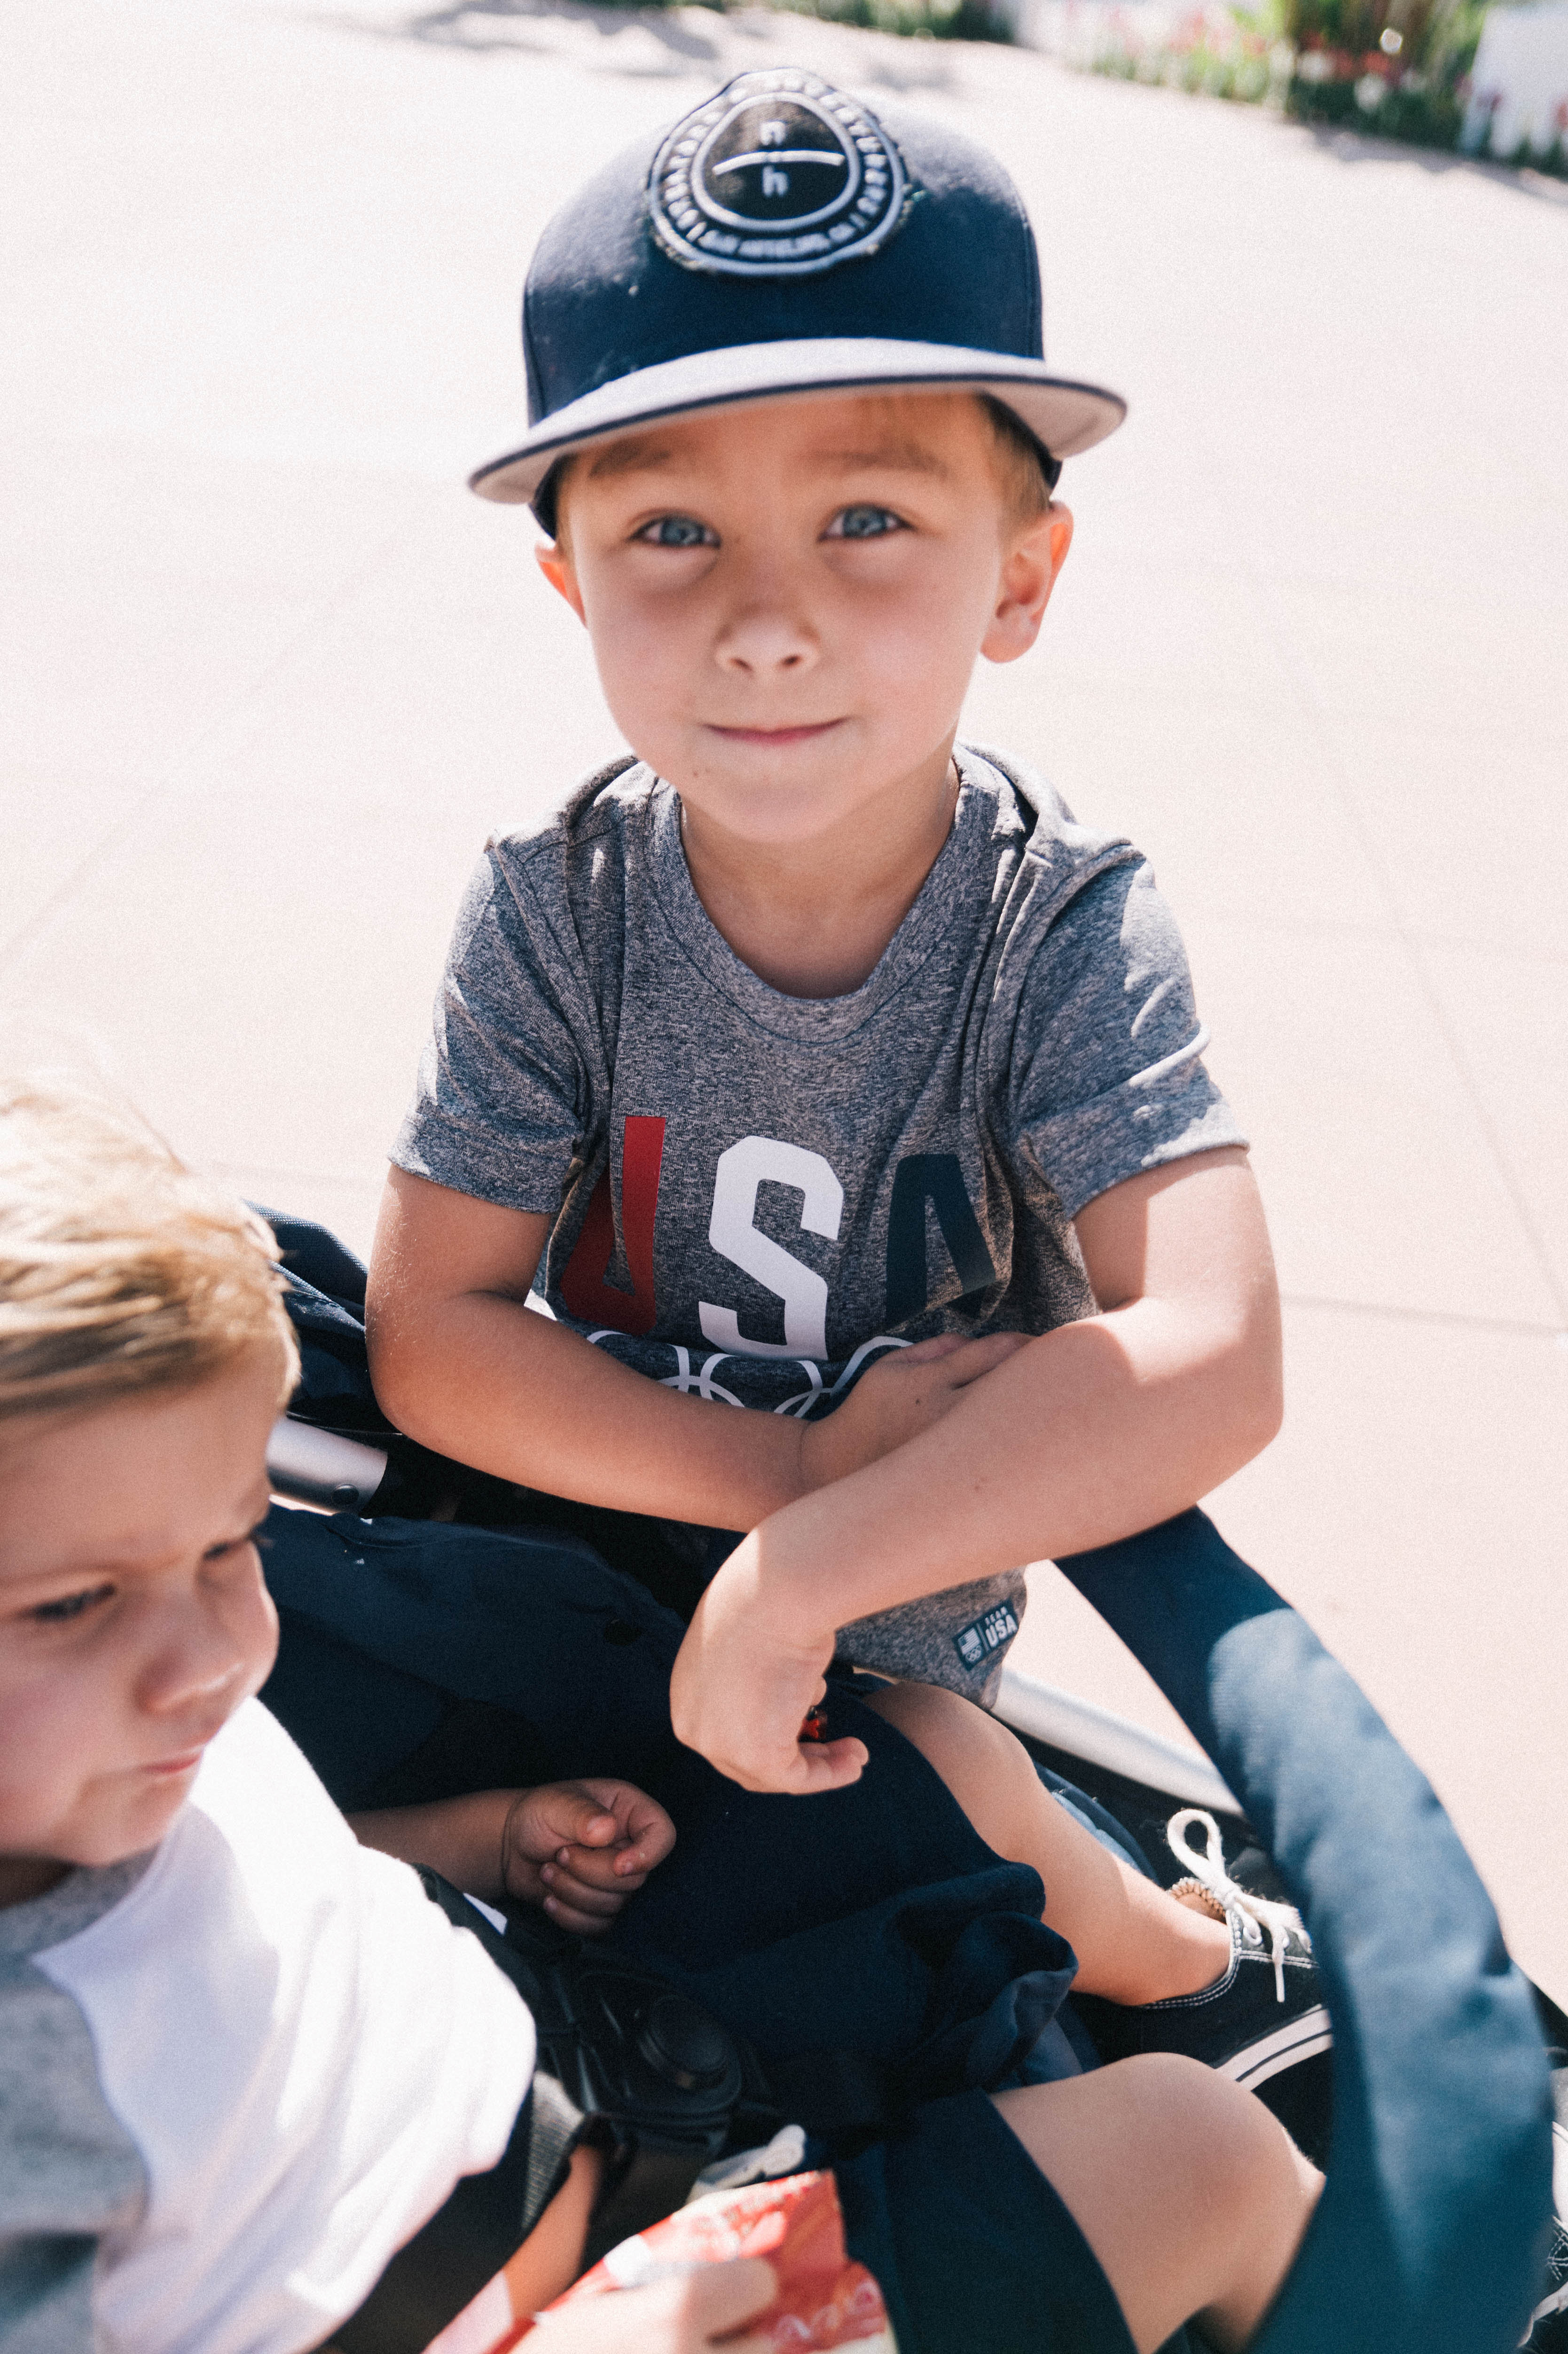 5 Ways to Stay Fit With Kids